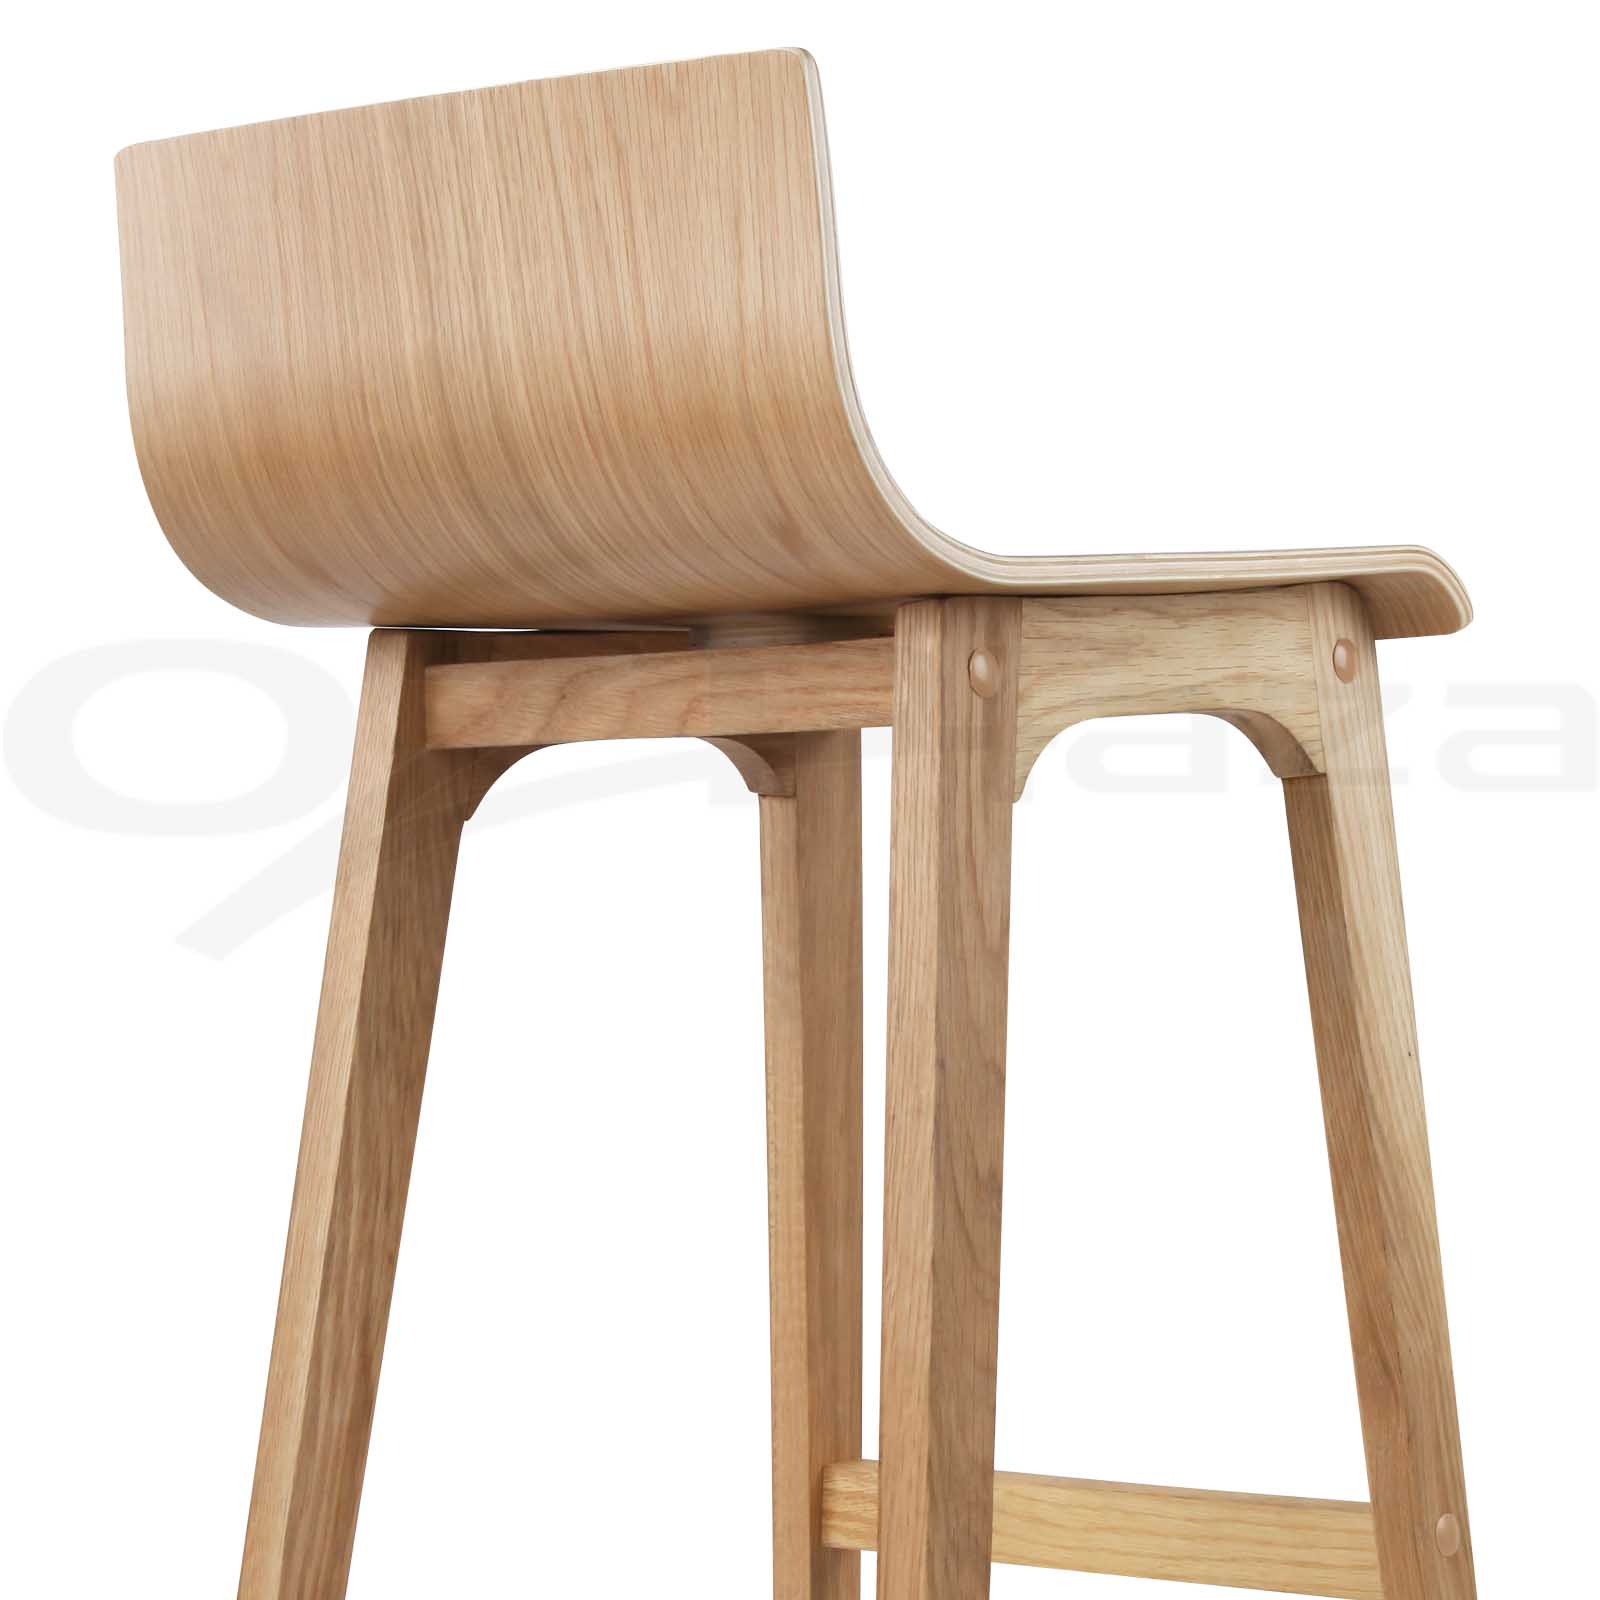 2x 4x Oak Wood Bar Stool Wooden Barstool Timber Dining